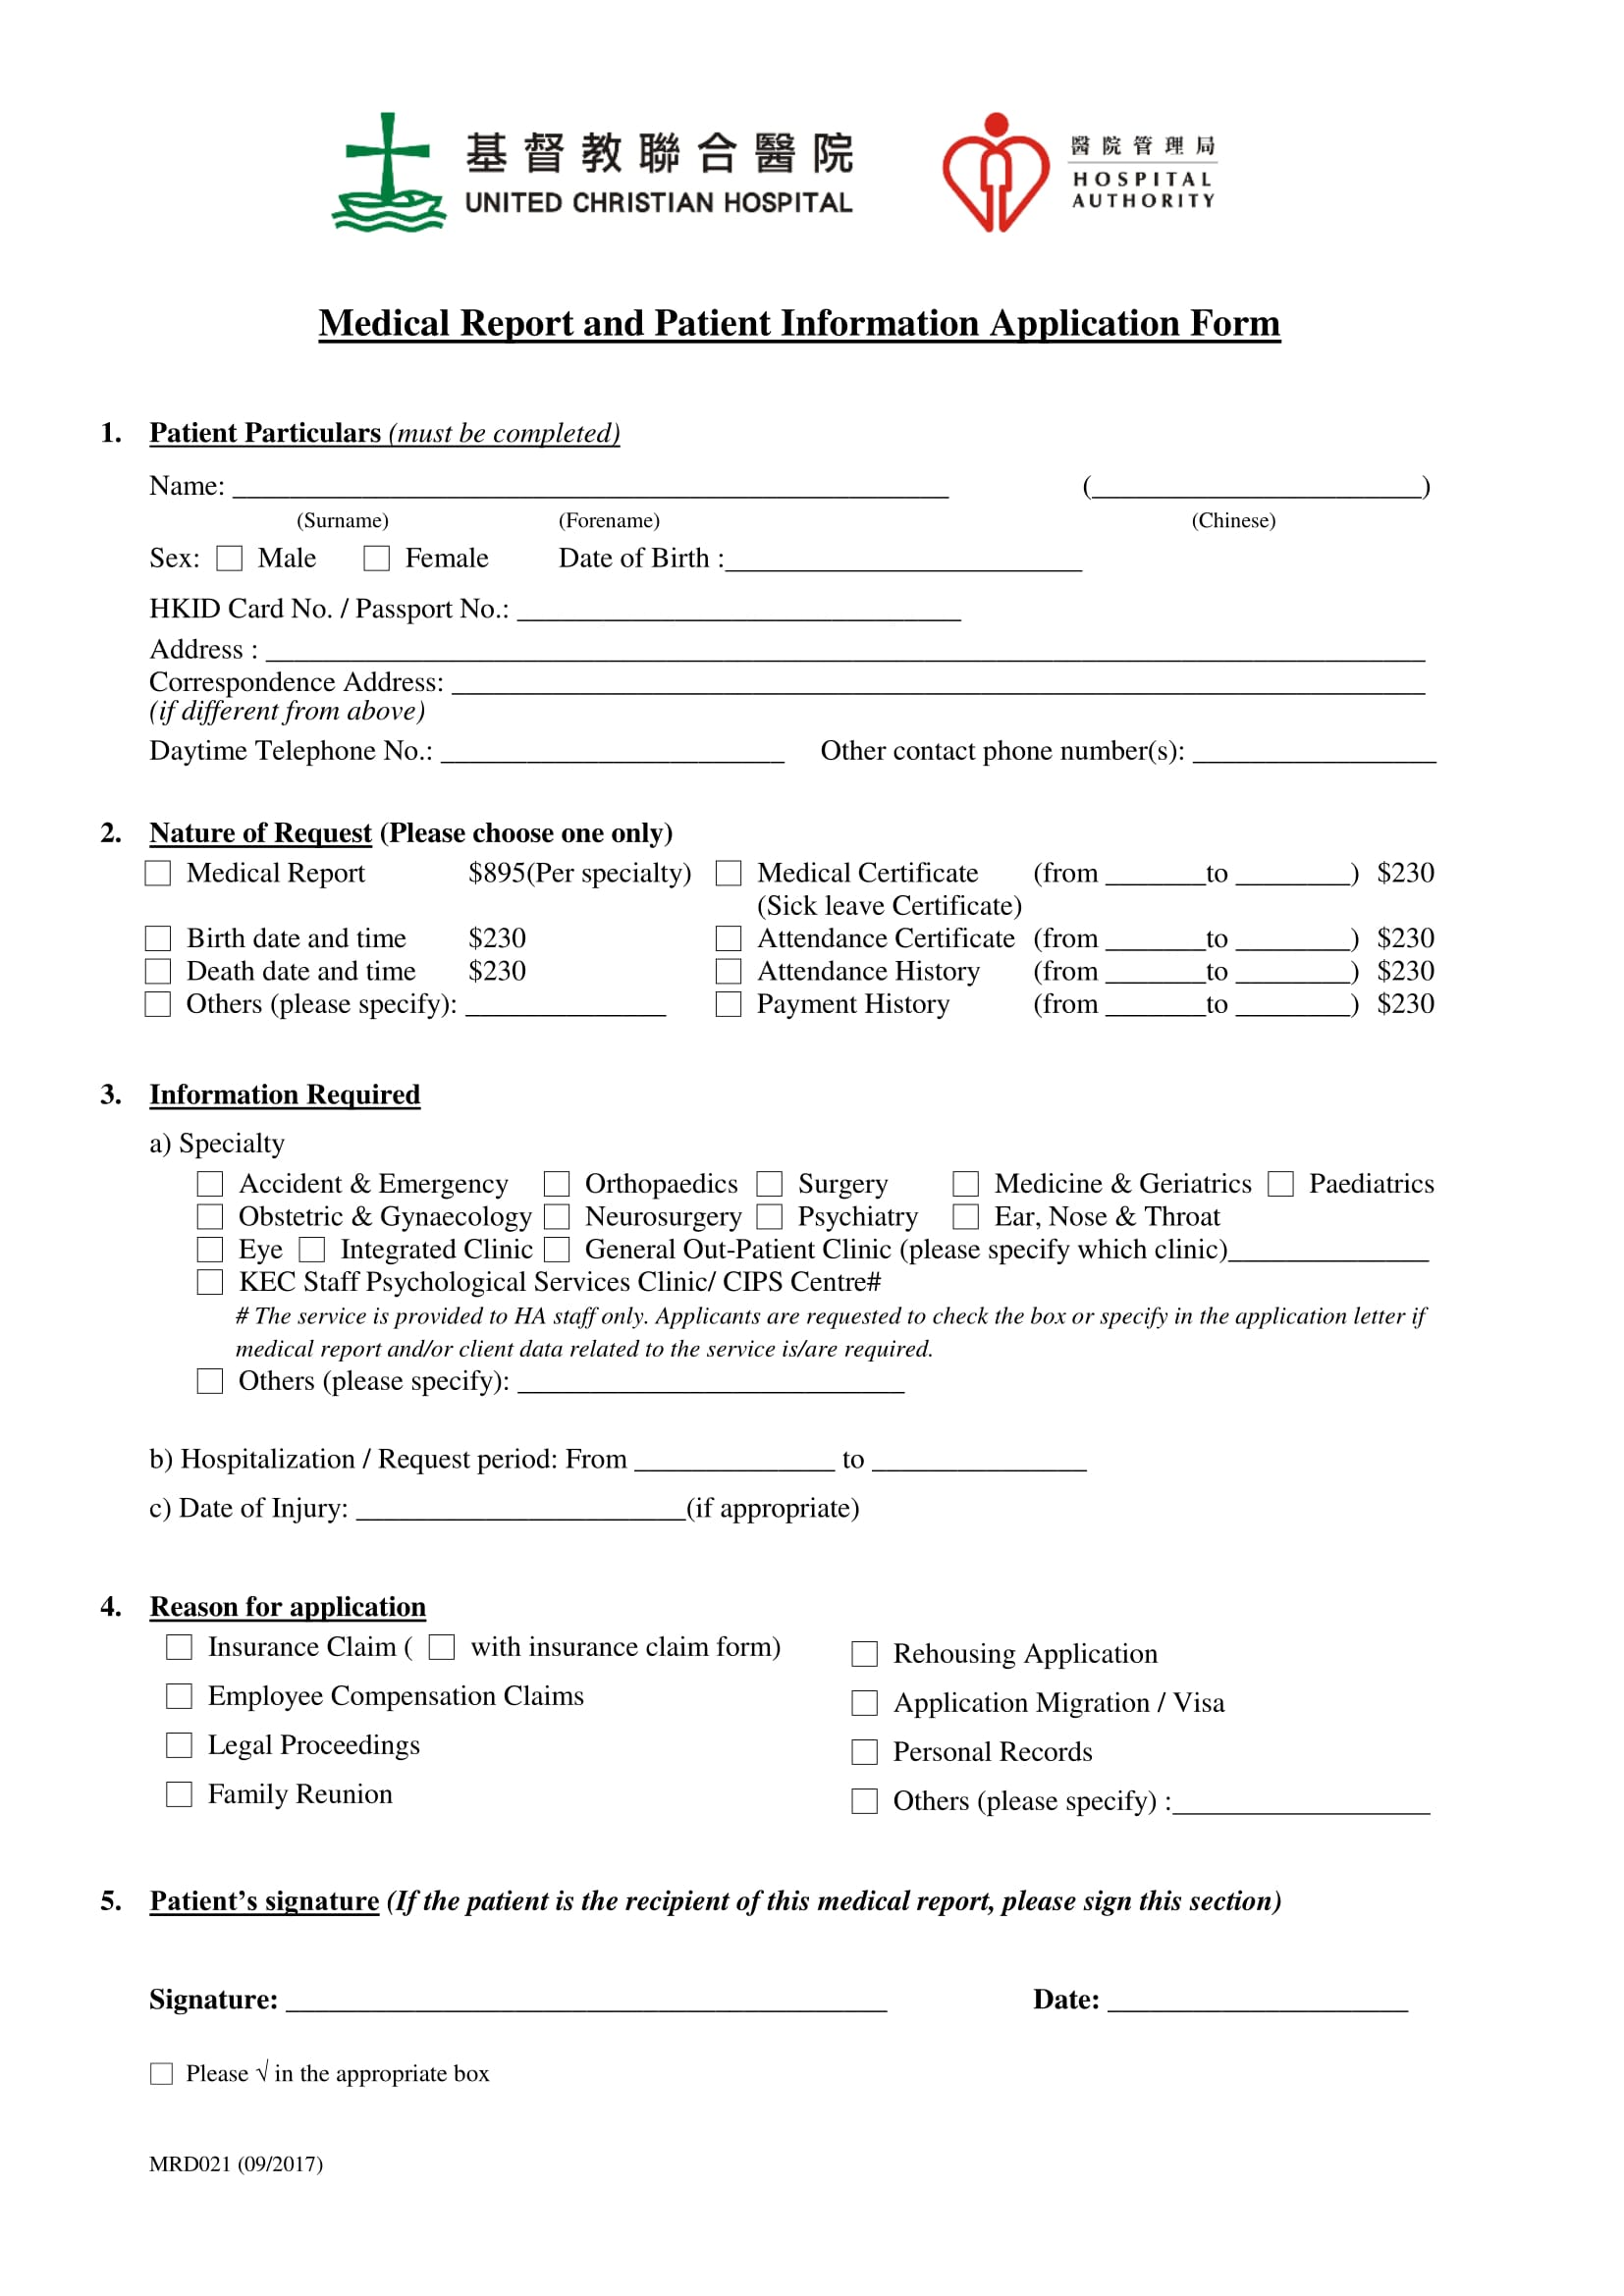 request for patient's medical report form 1